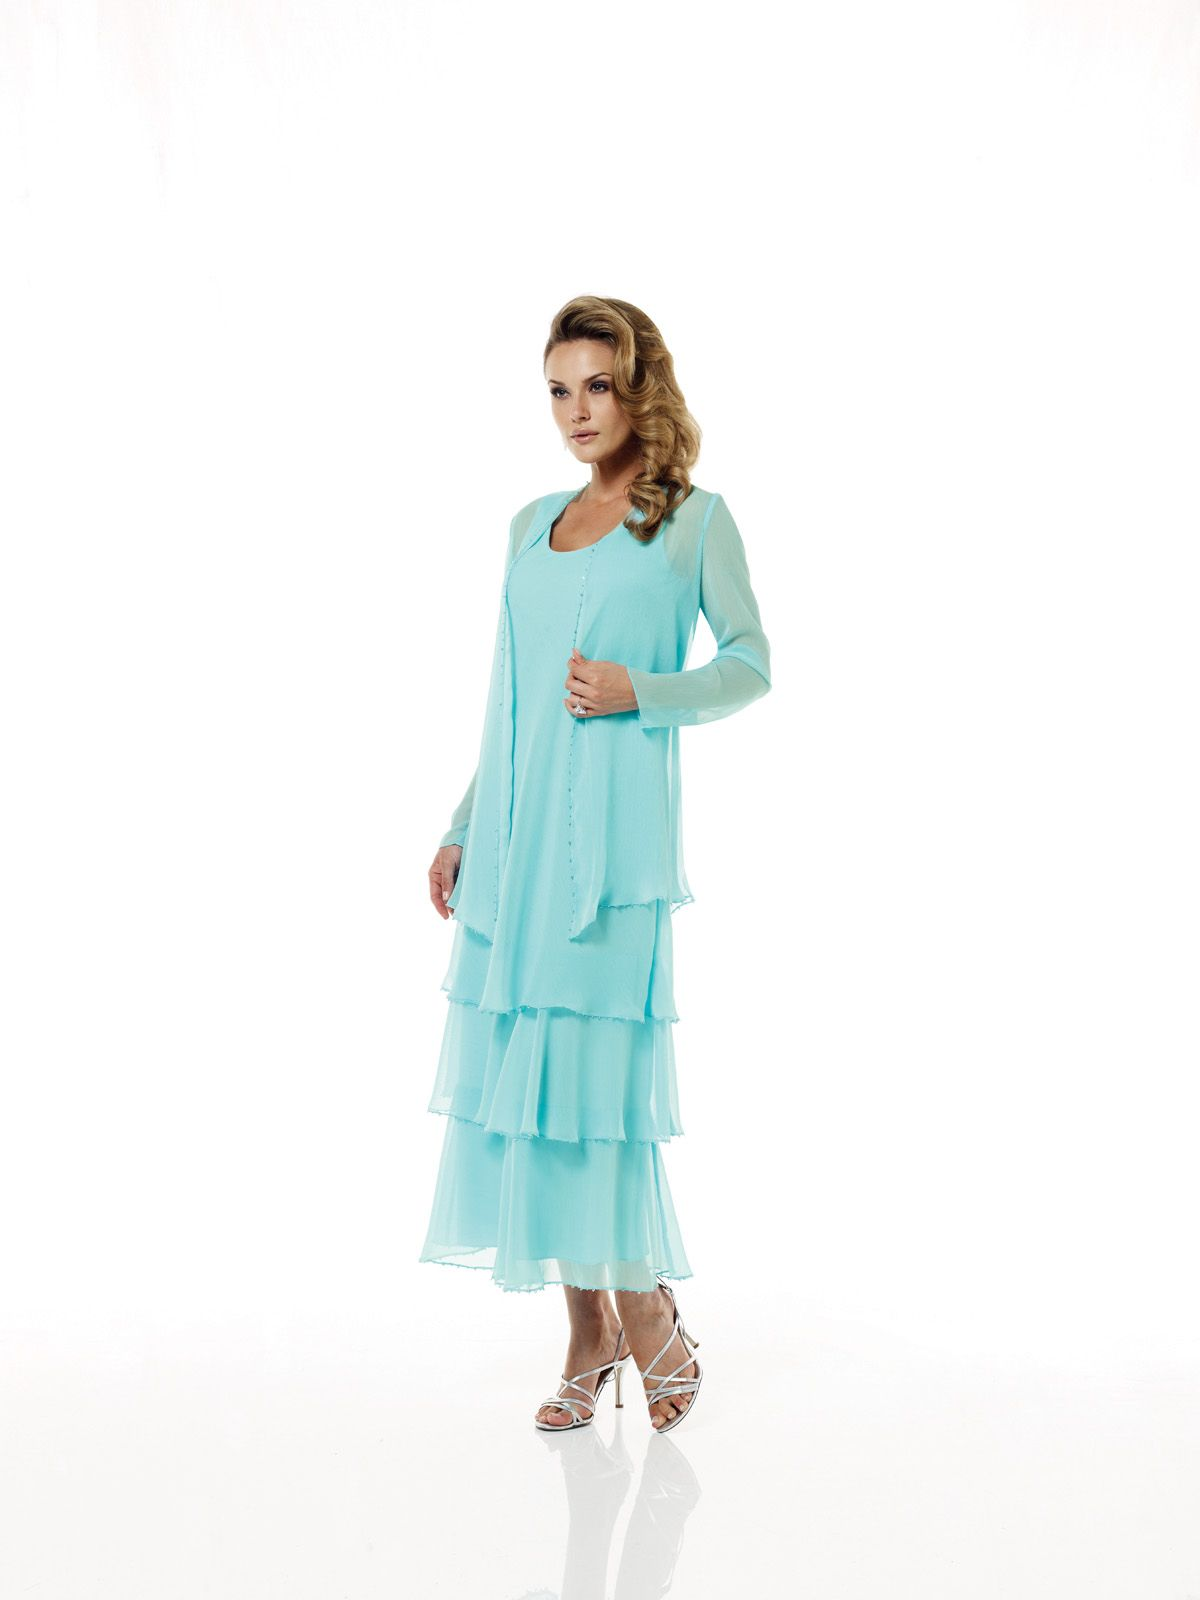 Capri by Mon Cheri | Mother of the Bride Dresses | style #CP112 ...